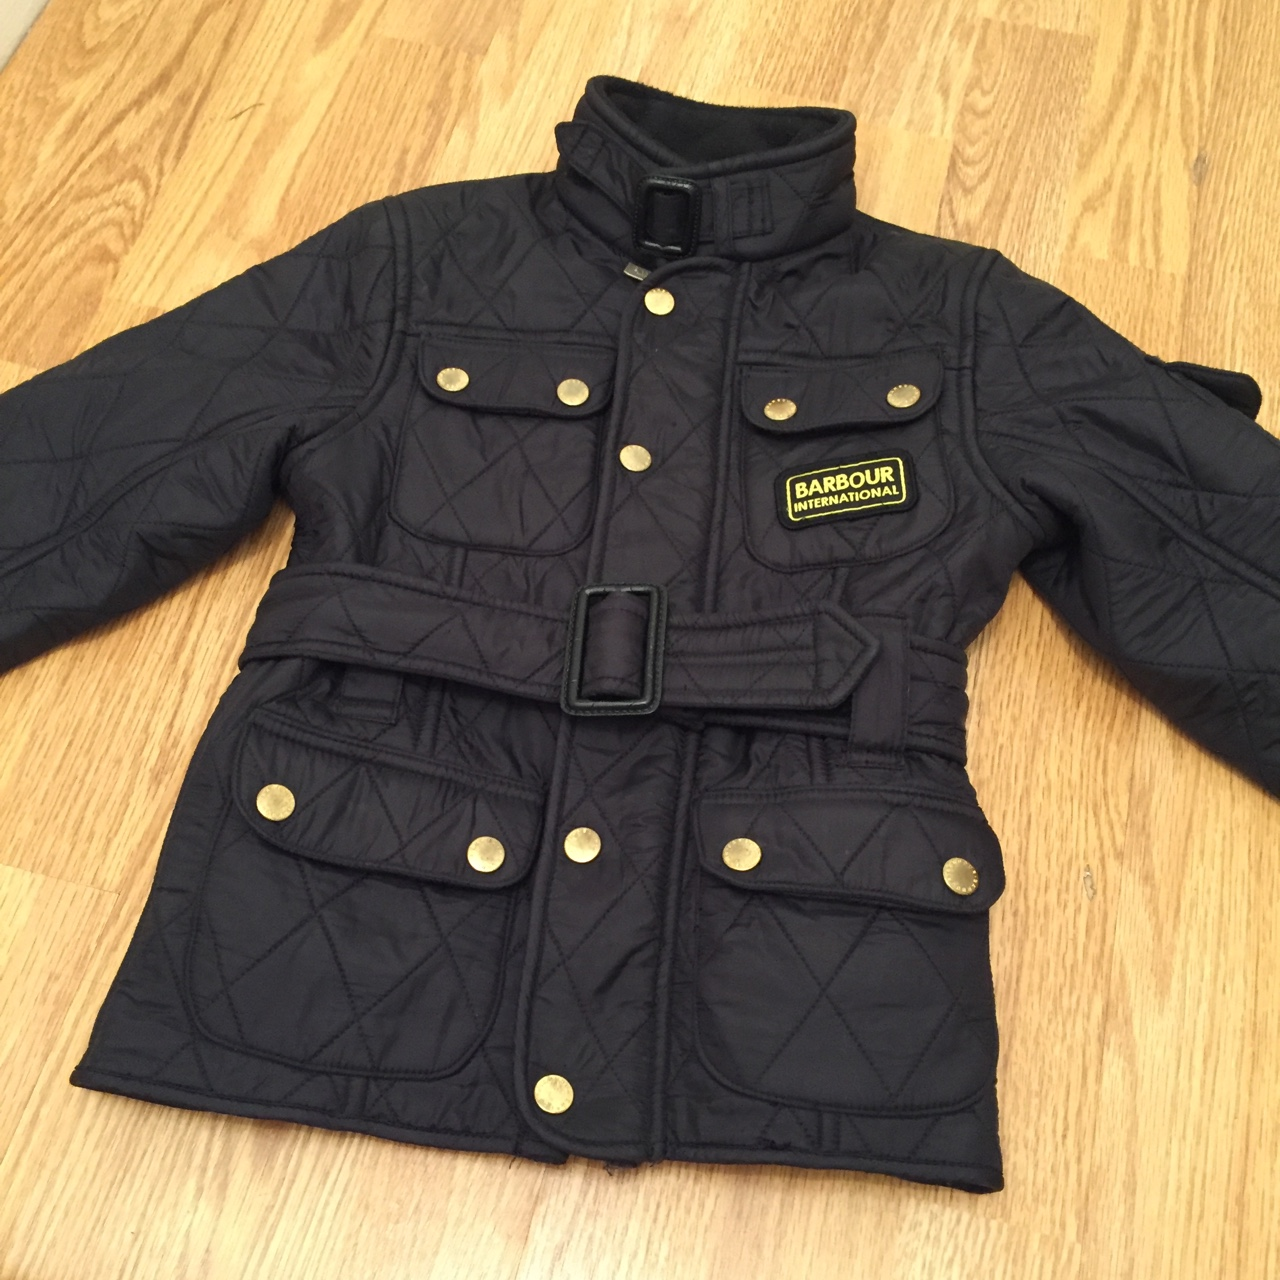 sneakers new products details for Childrens barbour jacket, size xs. My little boy had... - Depop